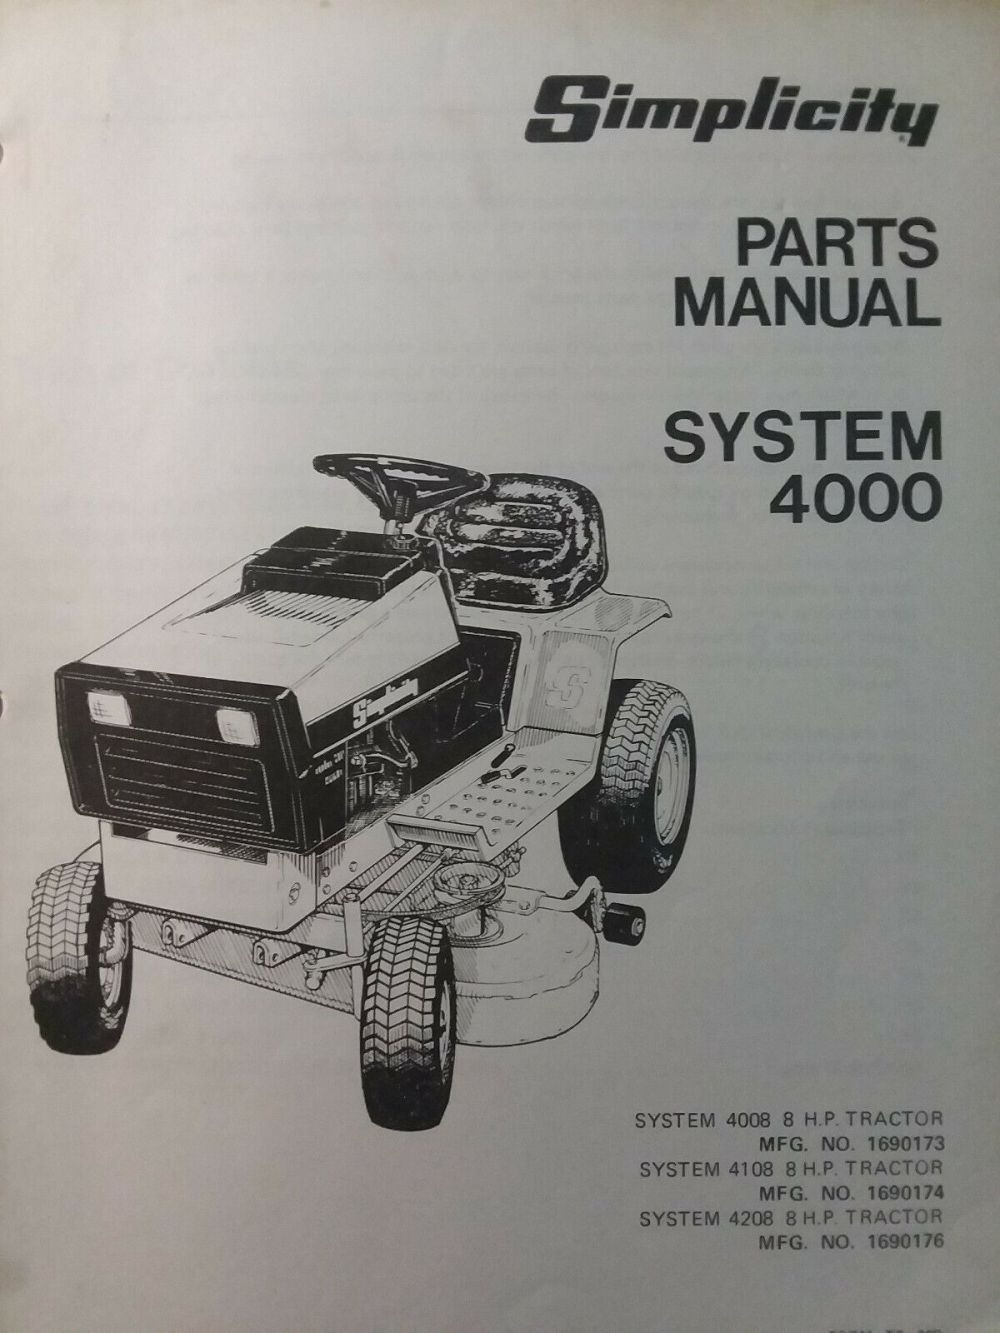 medium resolution of simplicity 4008 4208 4108 lawn tractor mow parts manual 1690173 1690174 1690176 for sale online